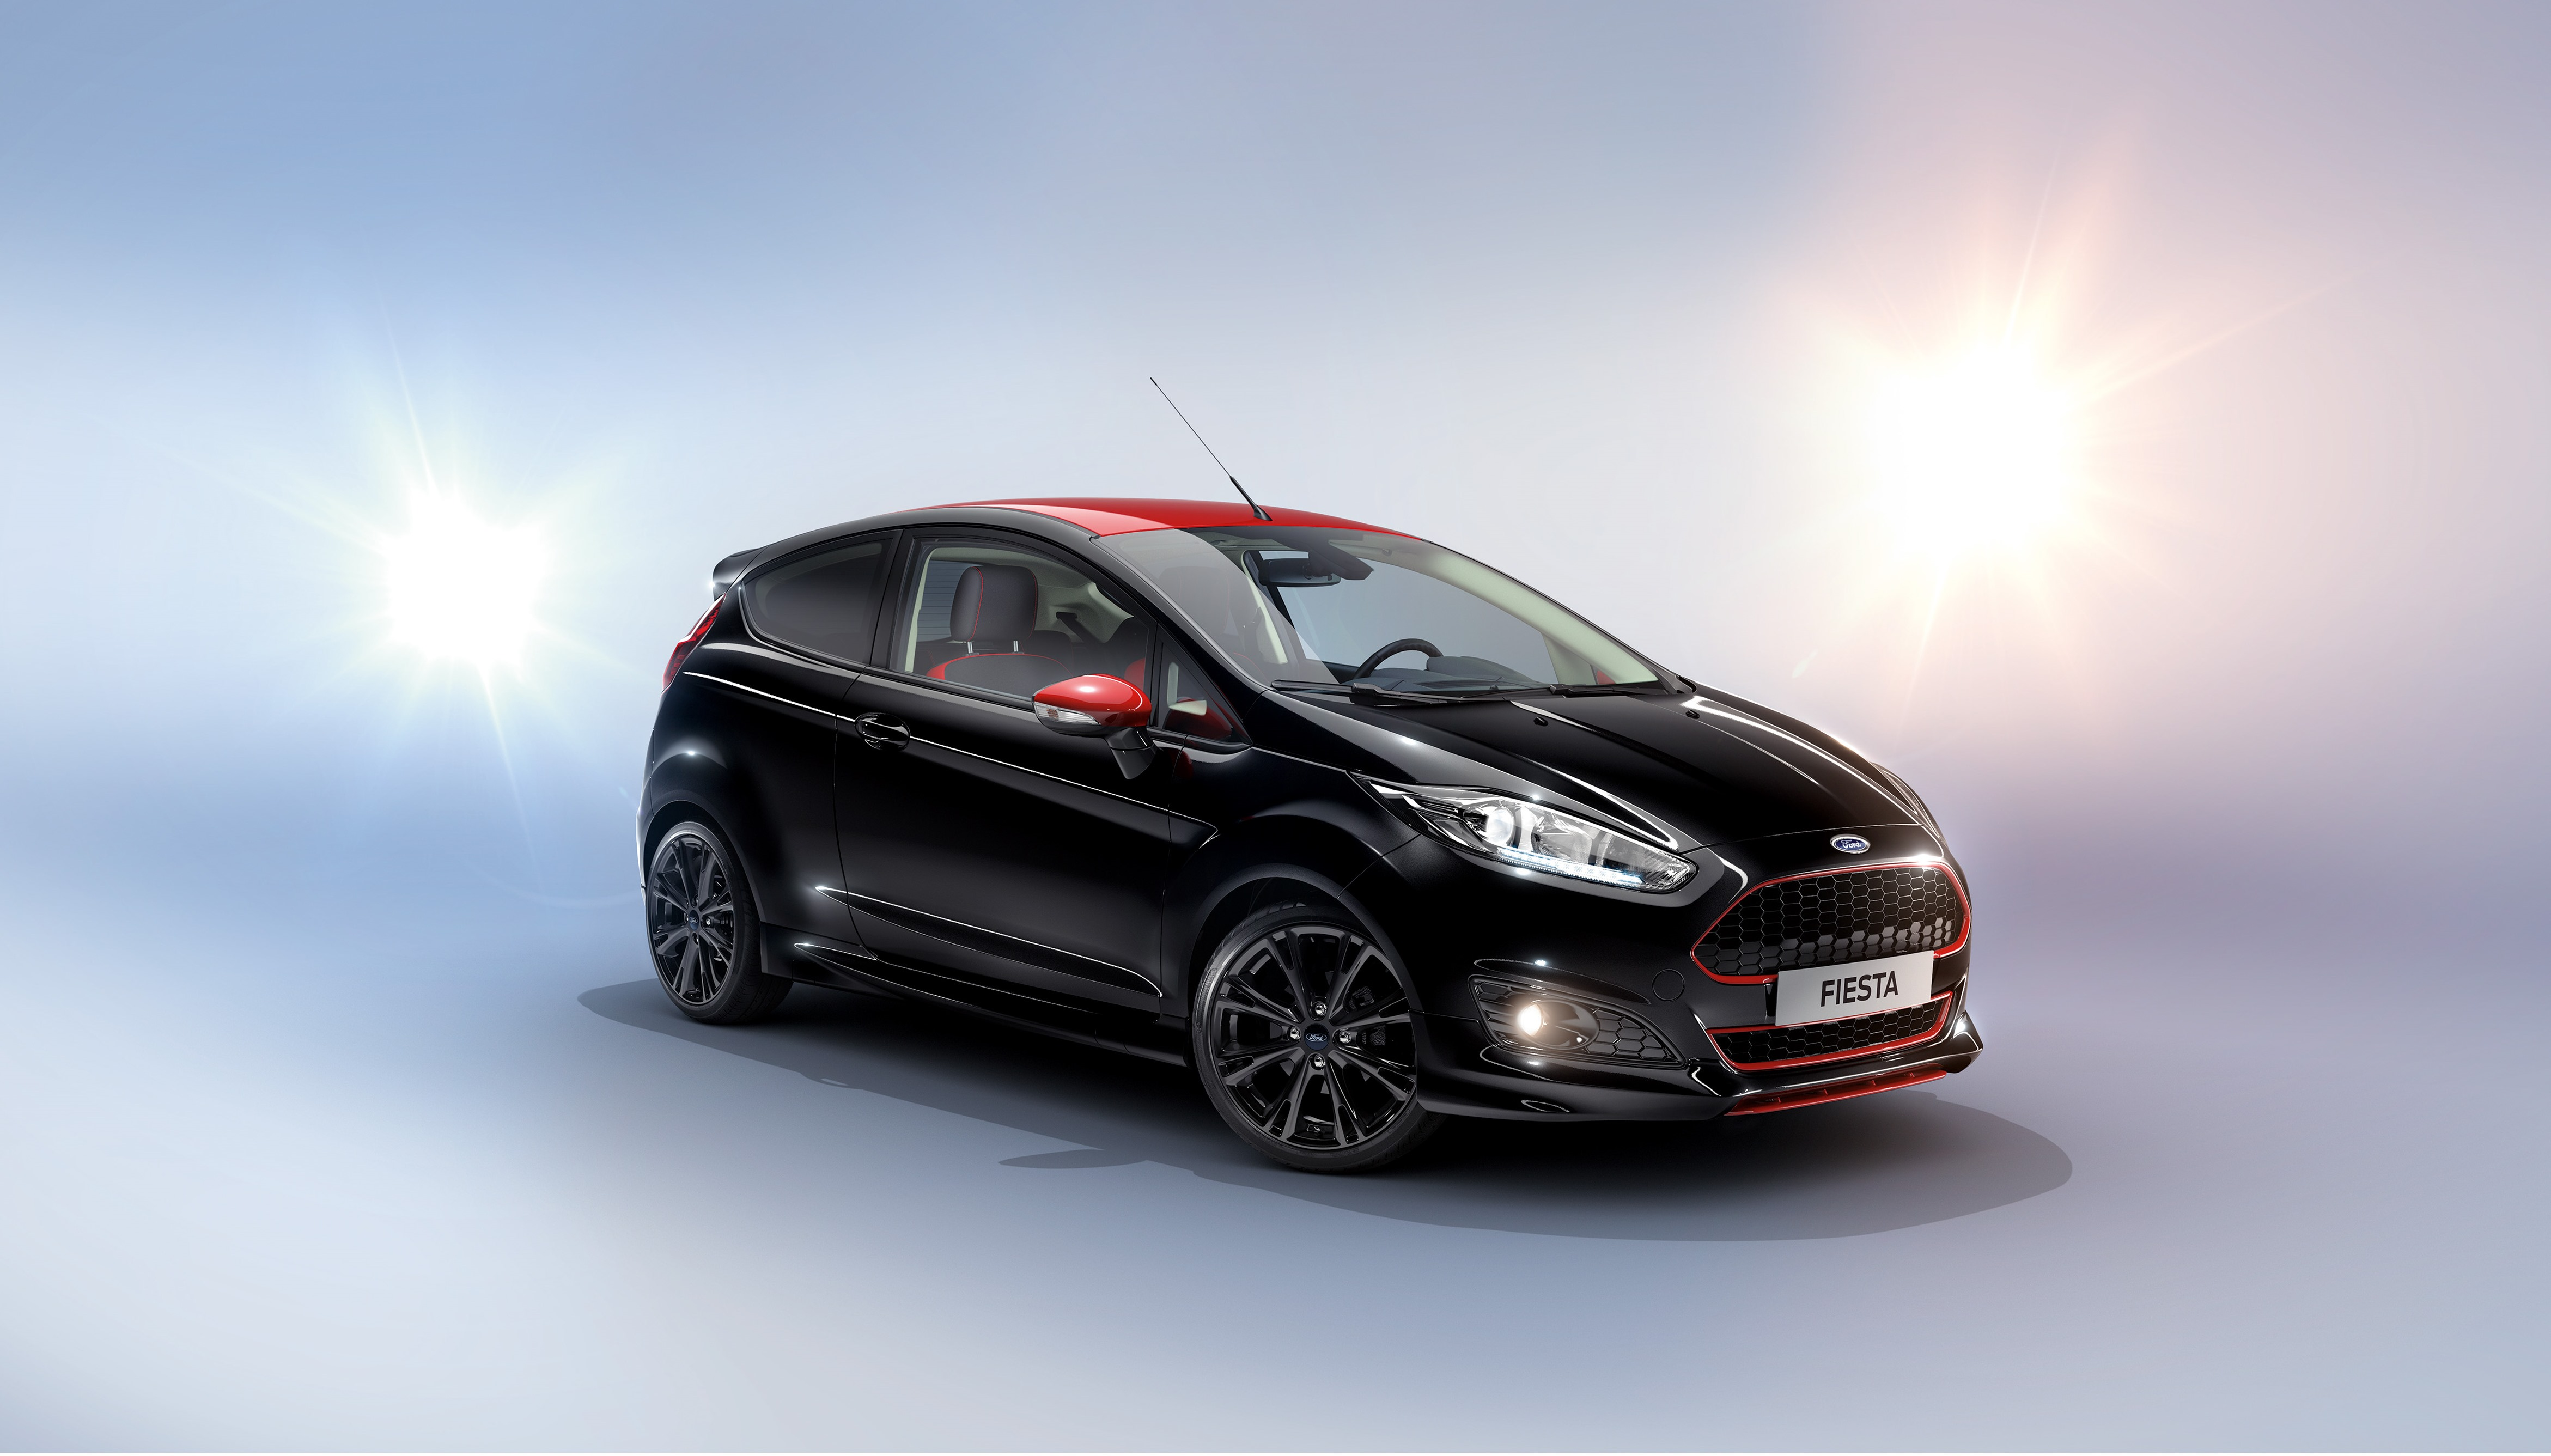 1464939517_Ford_Fiesta_Black__2_